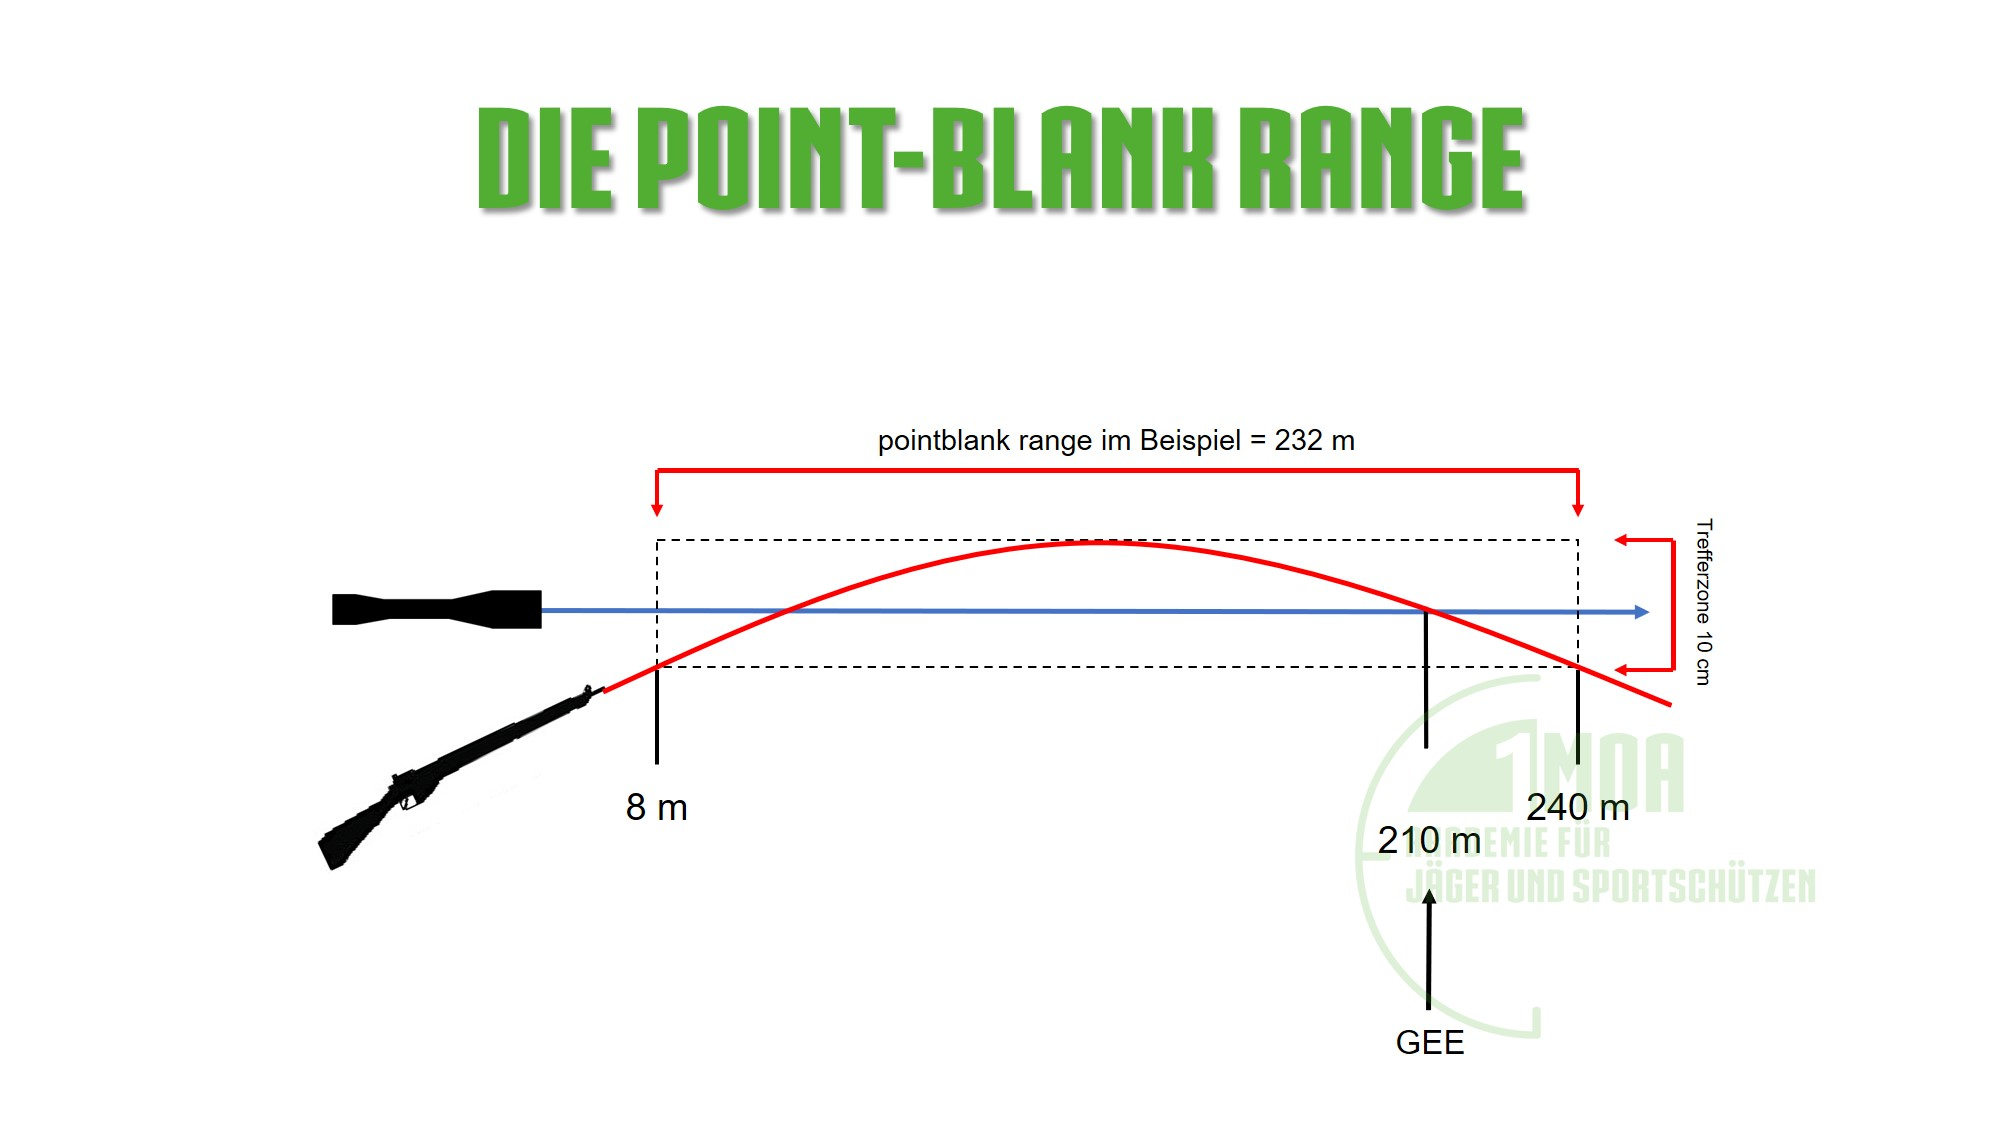 die point-blank range